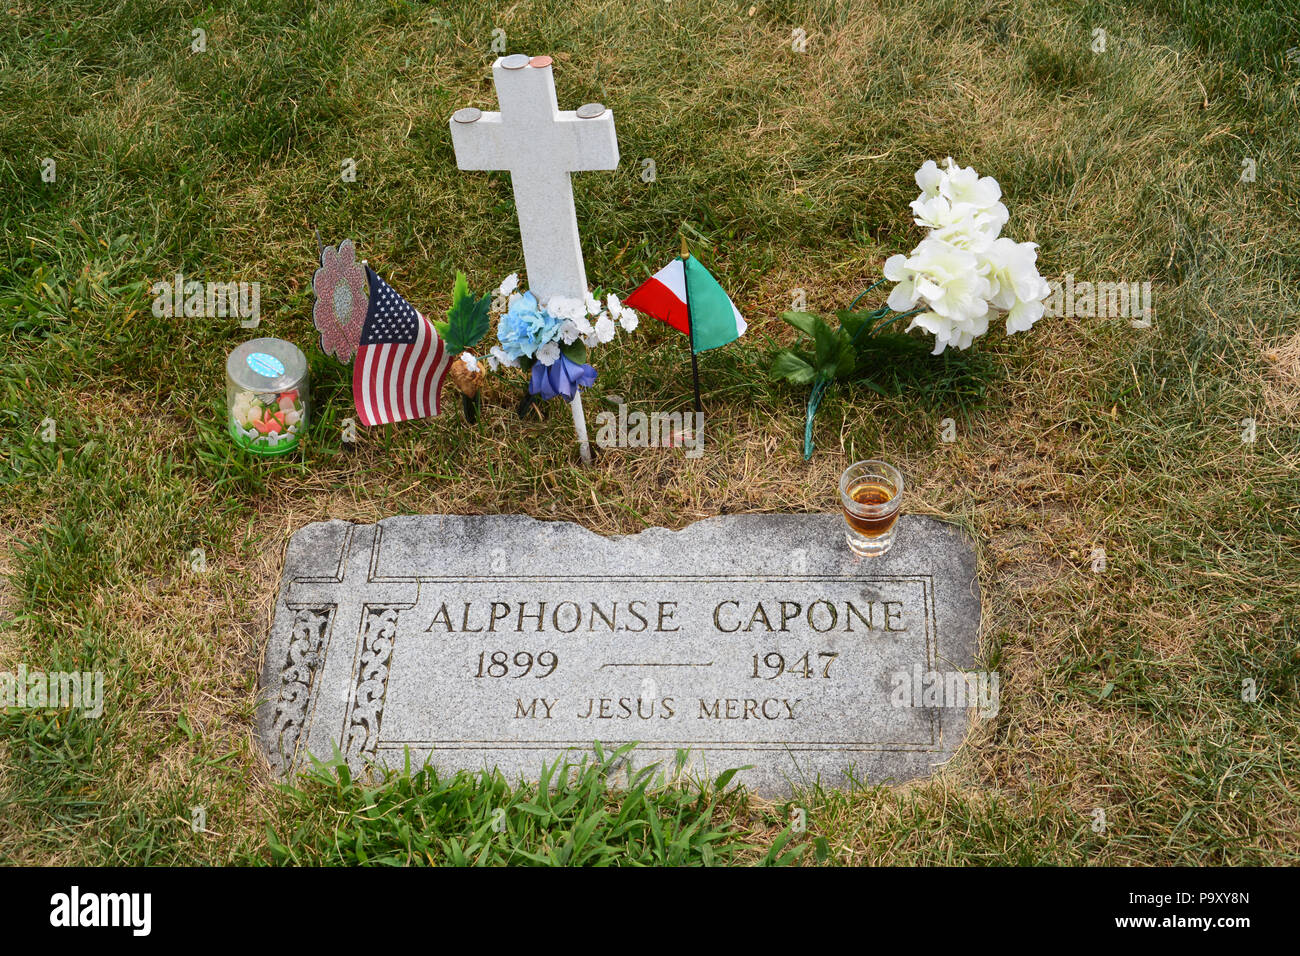 Visitors leave tributes at the headstone of 1920's Chicago gangster Al Capone at the Mount Carmel Cemetery in suburban Hillside - Stock Image